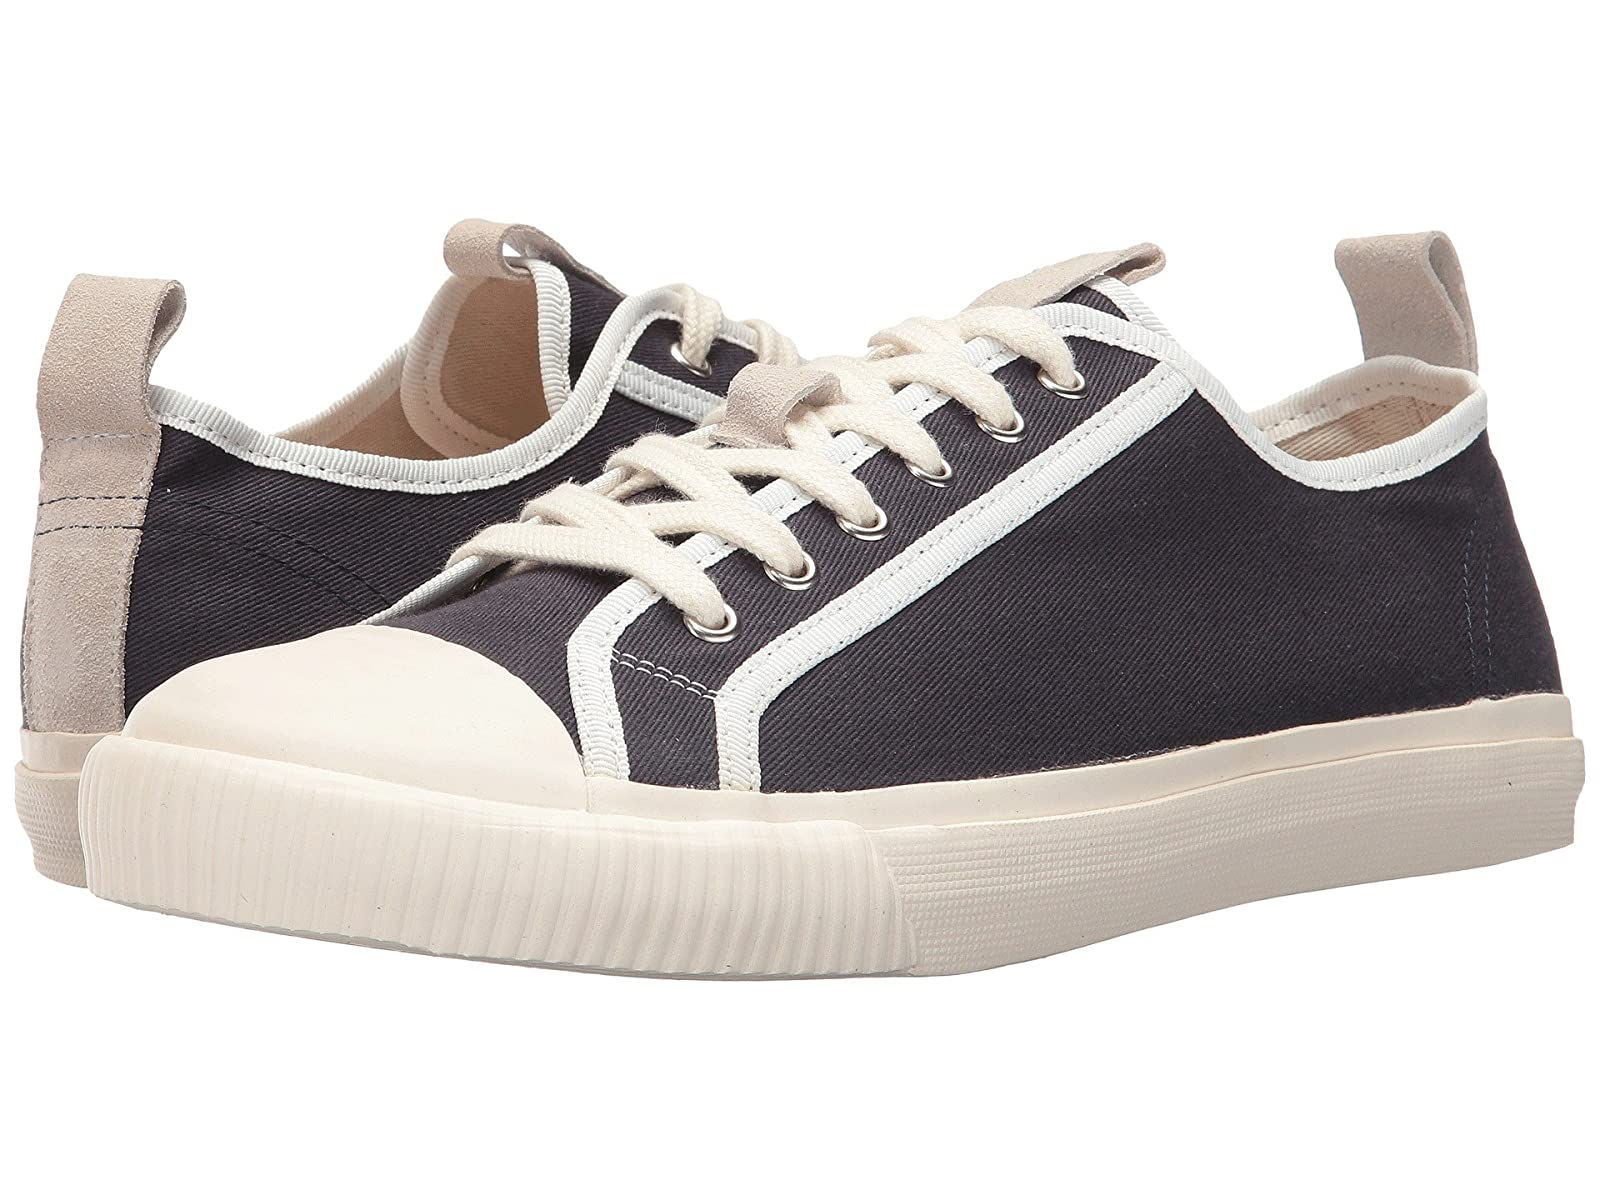 Grenson Canvas Low Top SneakerCheap and distinctive eye-catching shoes